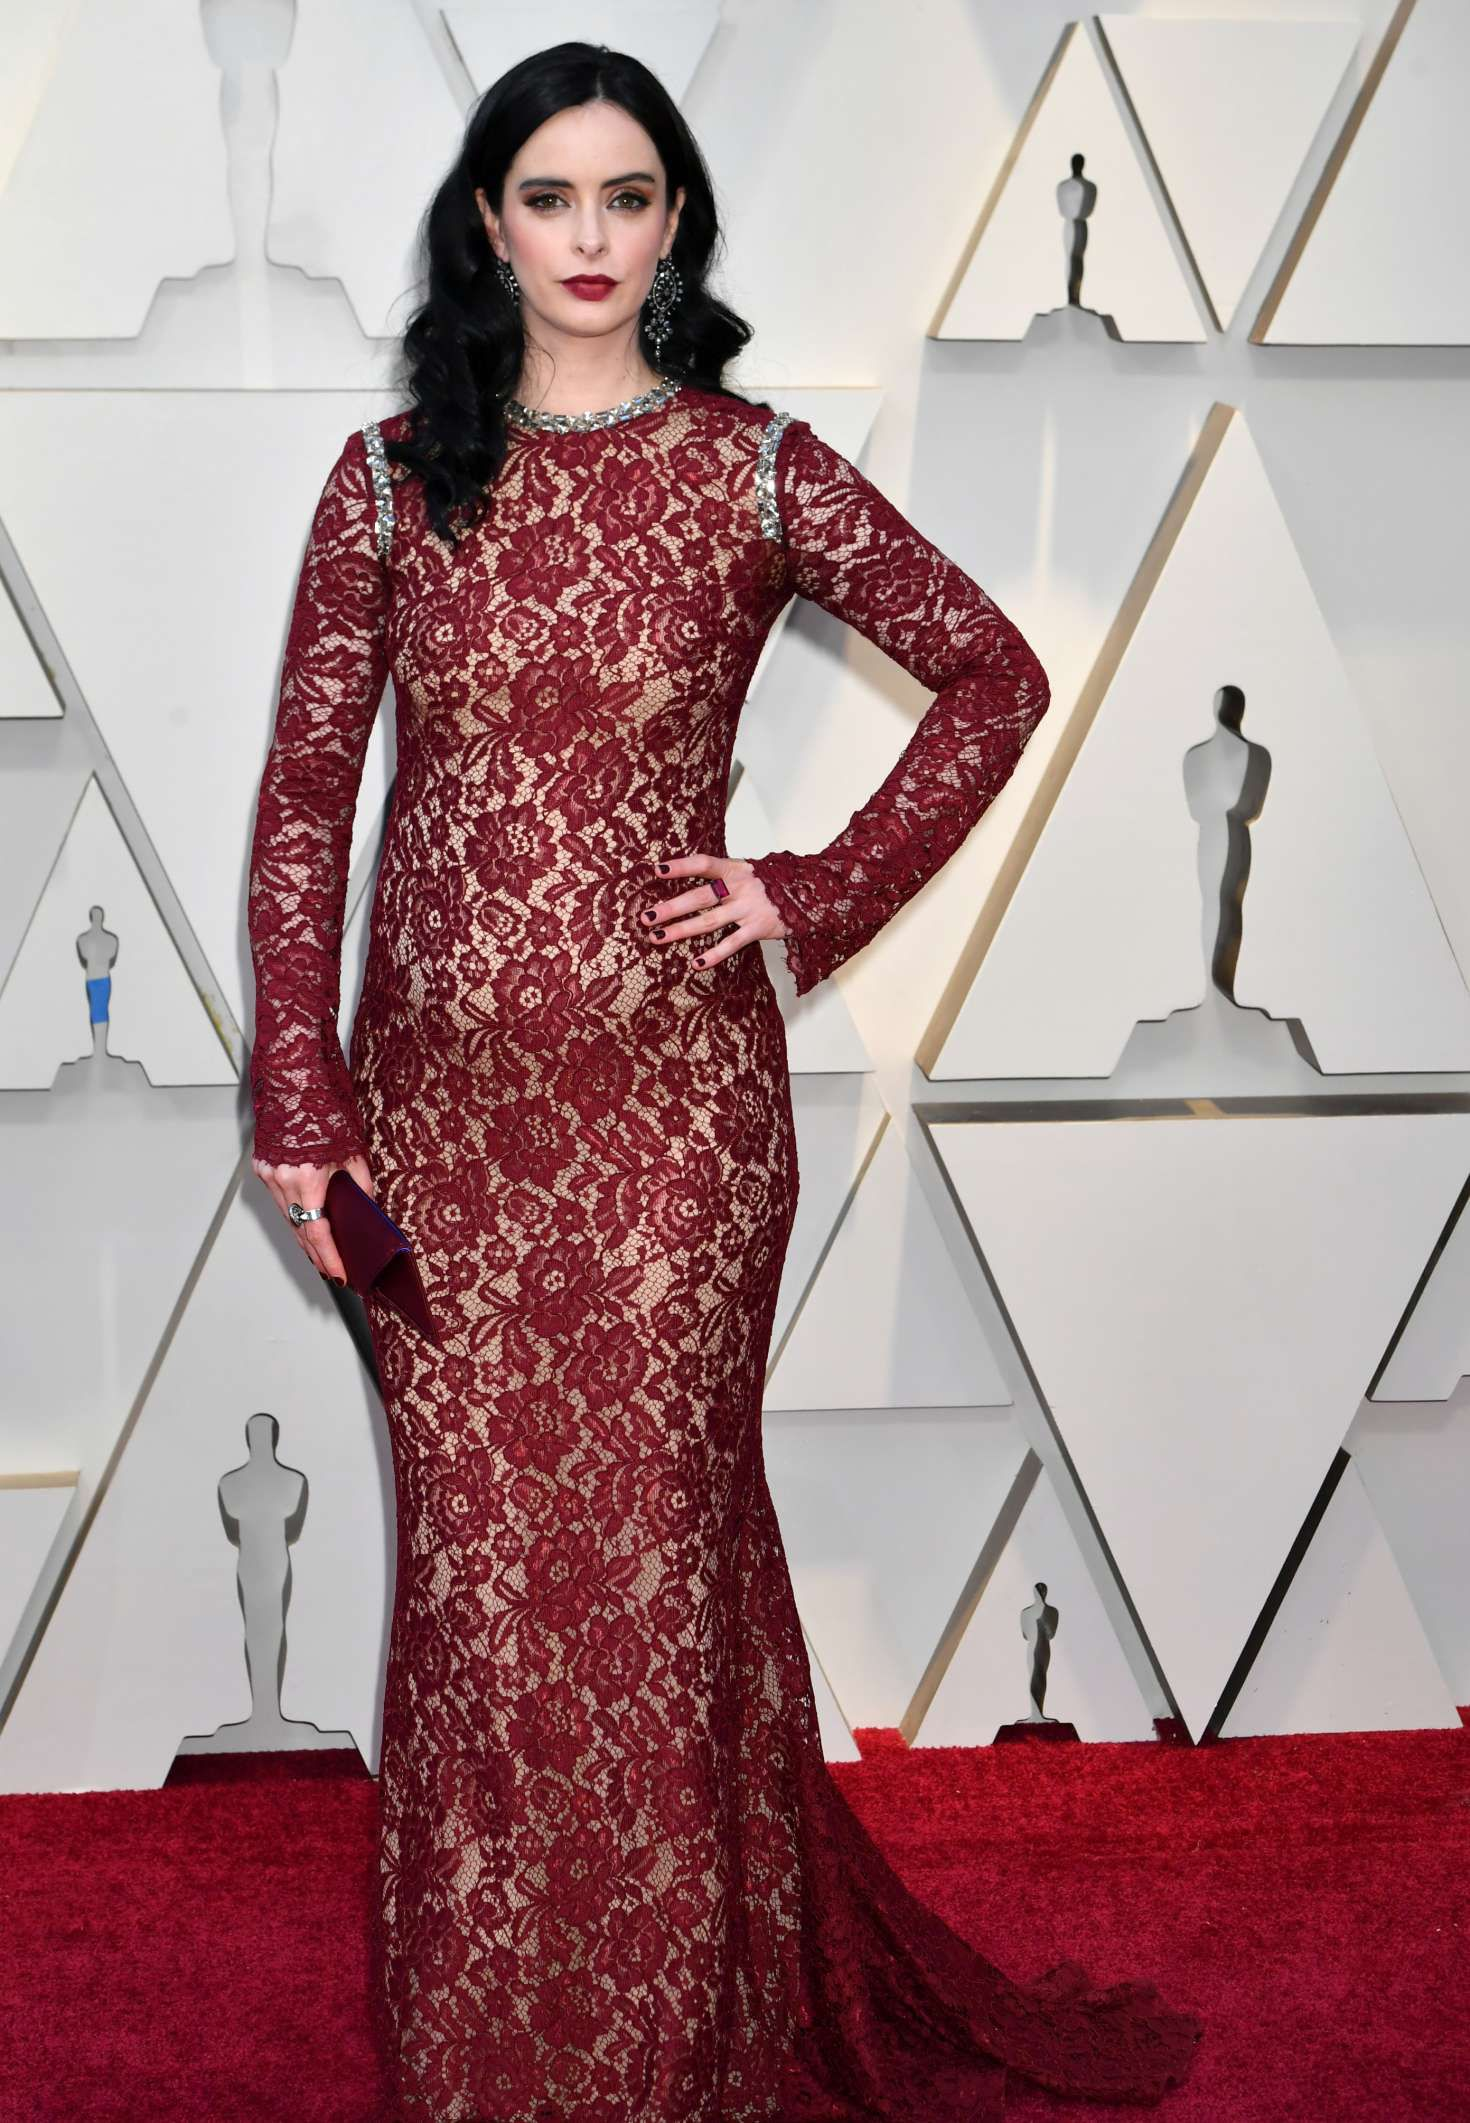 Photo 04: Krysten Ritter in red dress at the Oscars in Los Angeles, 2019